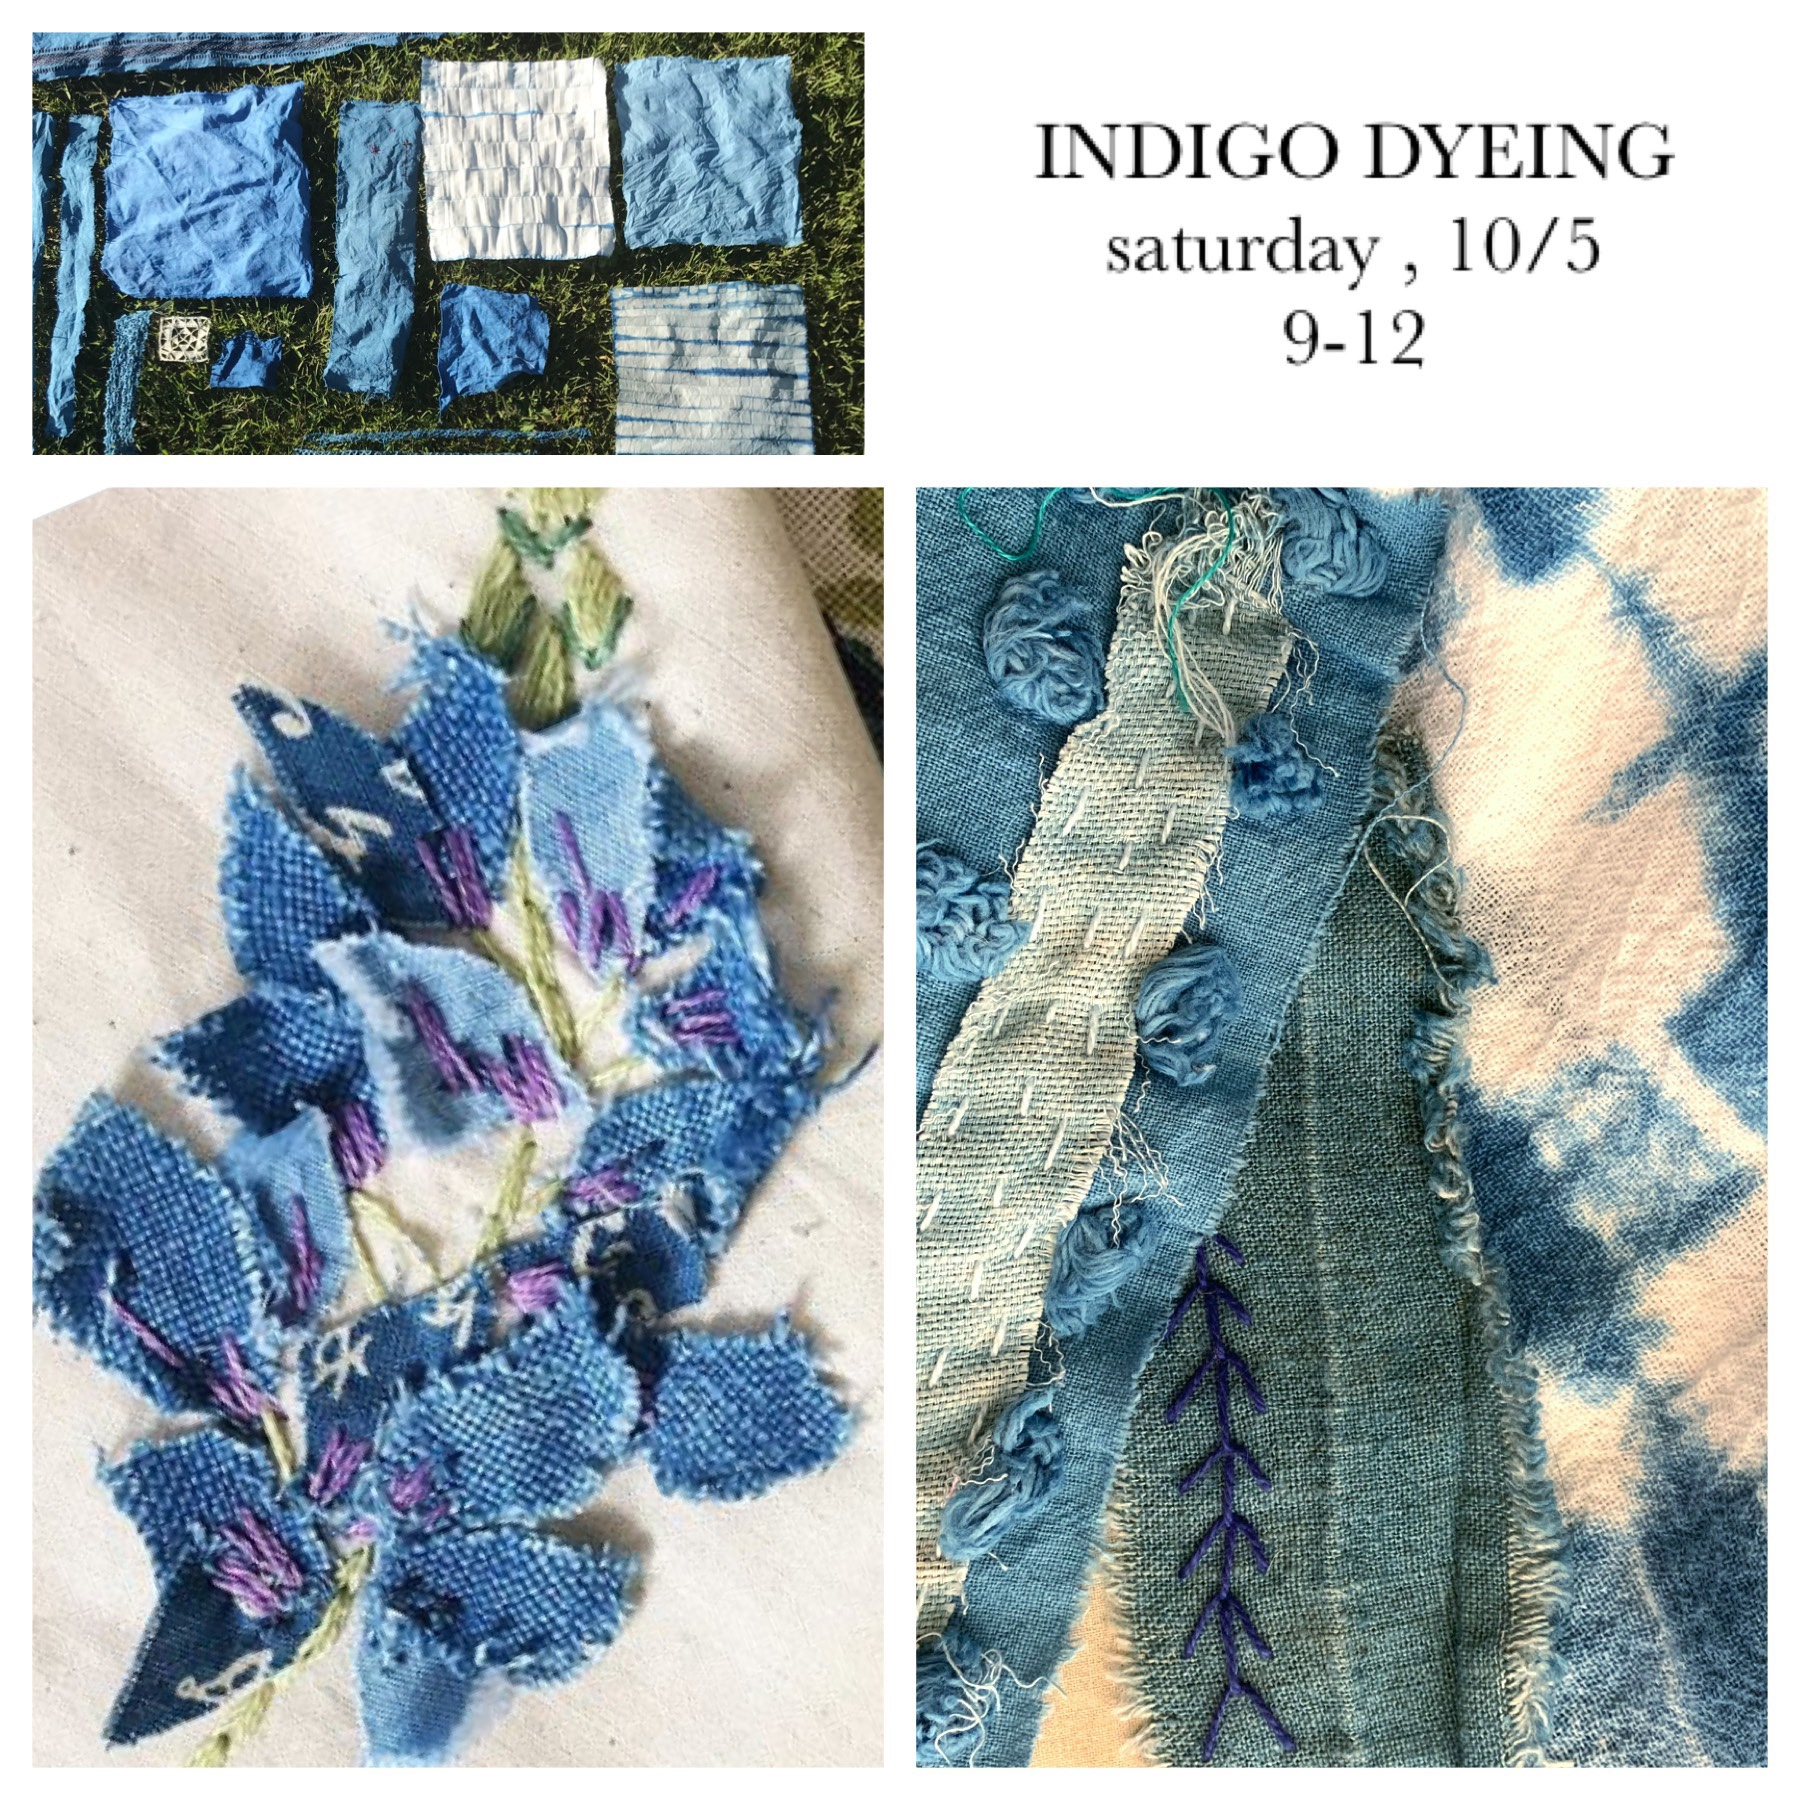 indigo dyeing workshop $65.00 - all materials included but please bring an apron!you may bring a few small linens (like hankies or napkin linens) to dye in addition to the materials we will provide you with! (they must be natural fibers)come experience the complete joy of dyeing textiles in an indigo dye pot! create fabric for your stitch book while learning how to make one-of-a-kind patterns with twisting and folding techniques.